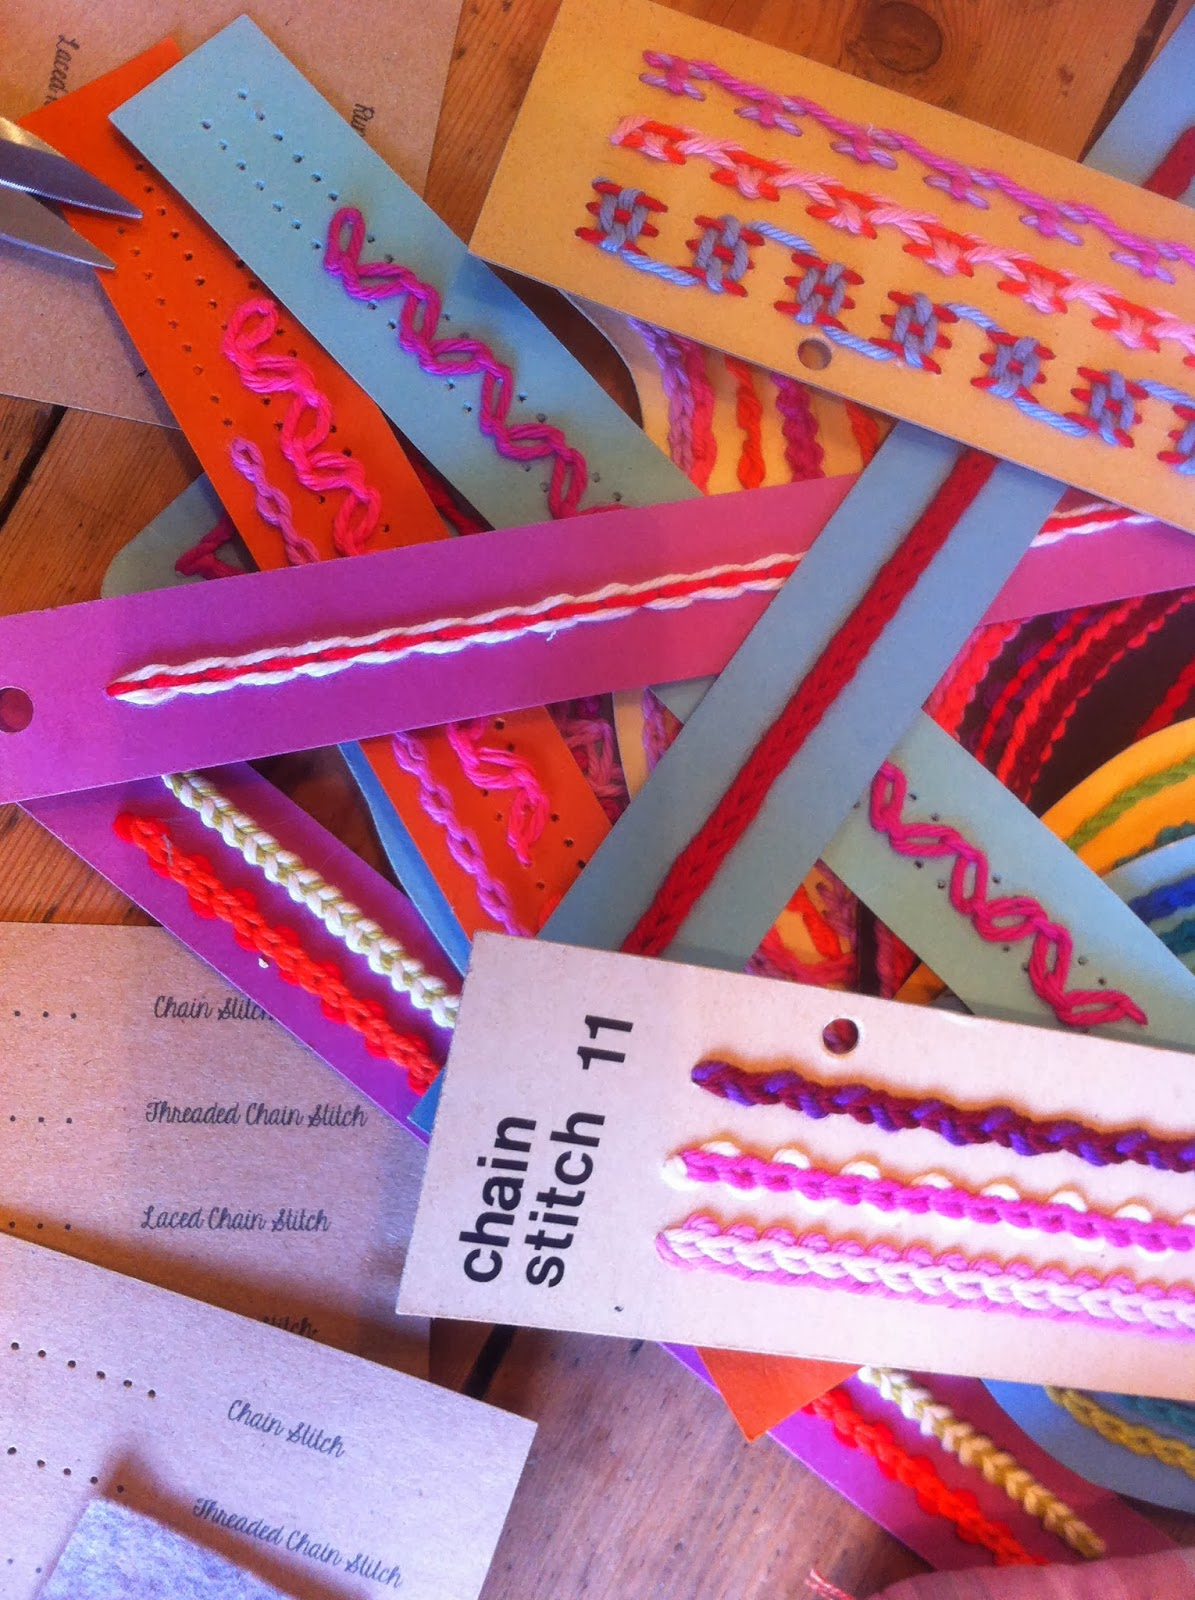 stitch card teaching aids by Joan Nicholson